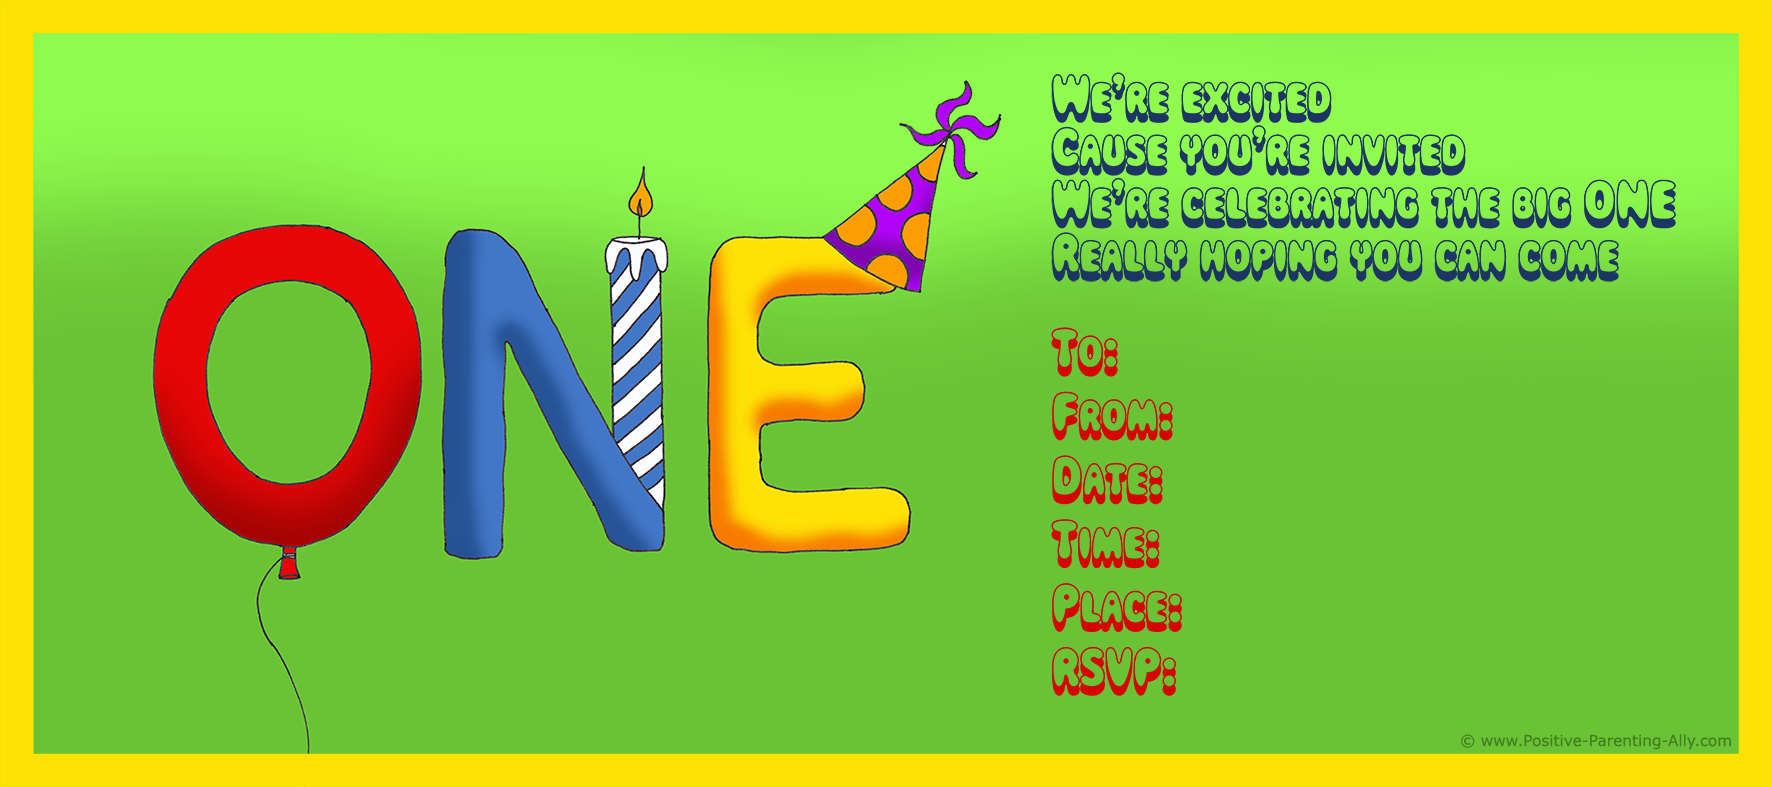 Birthday Invitation For The Big ONE All Free And Printable